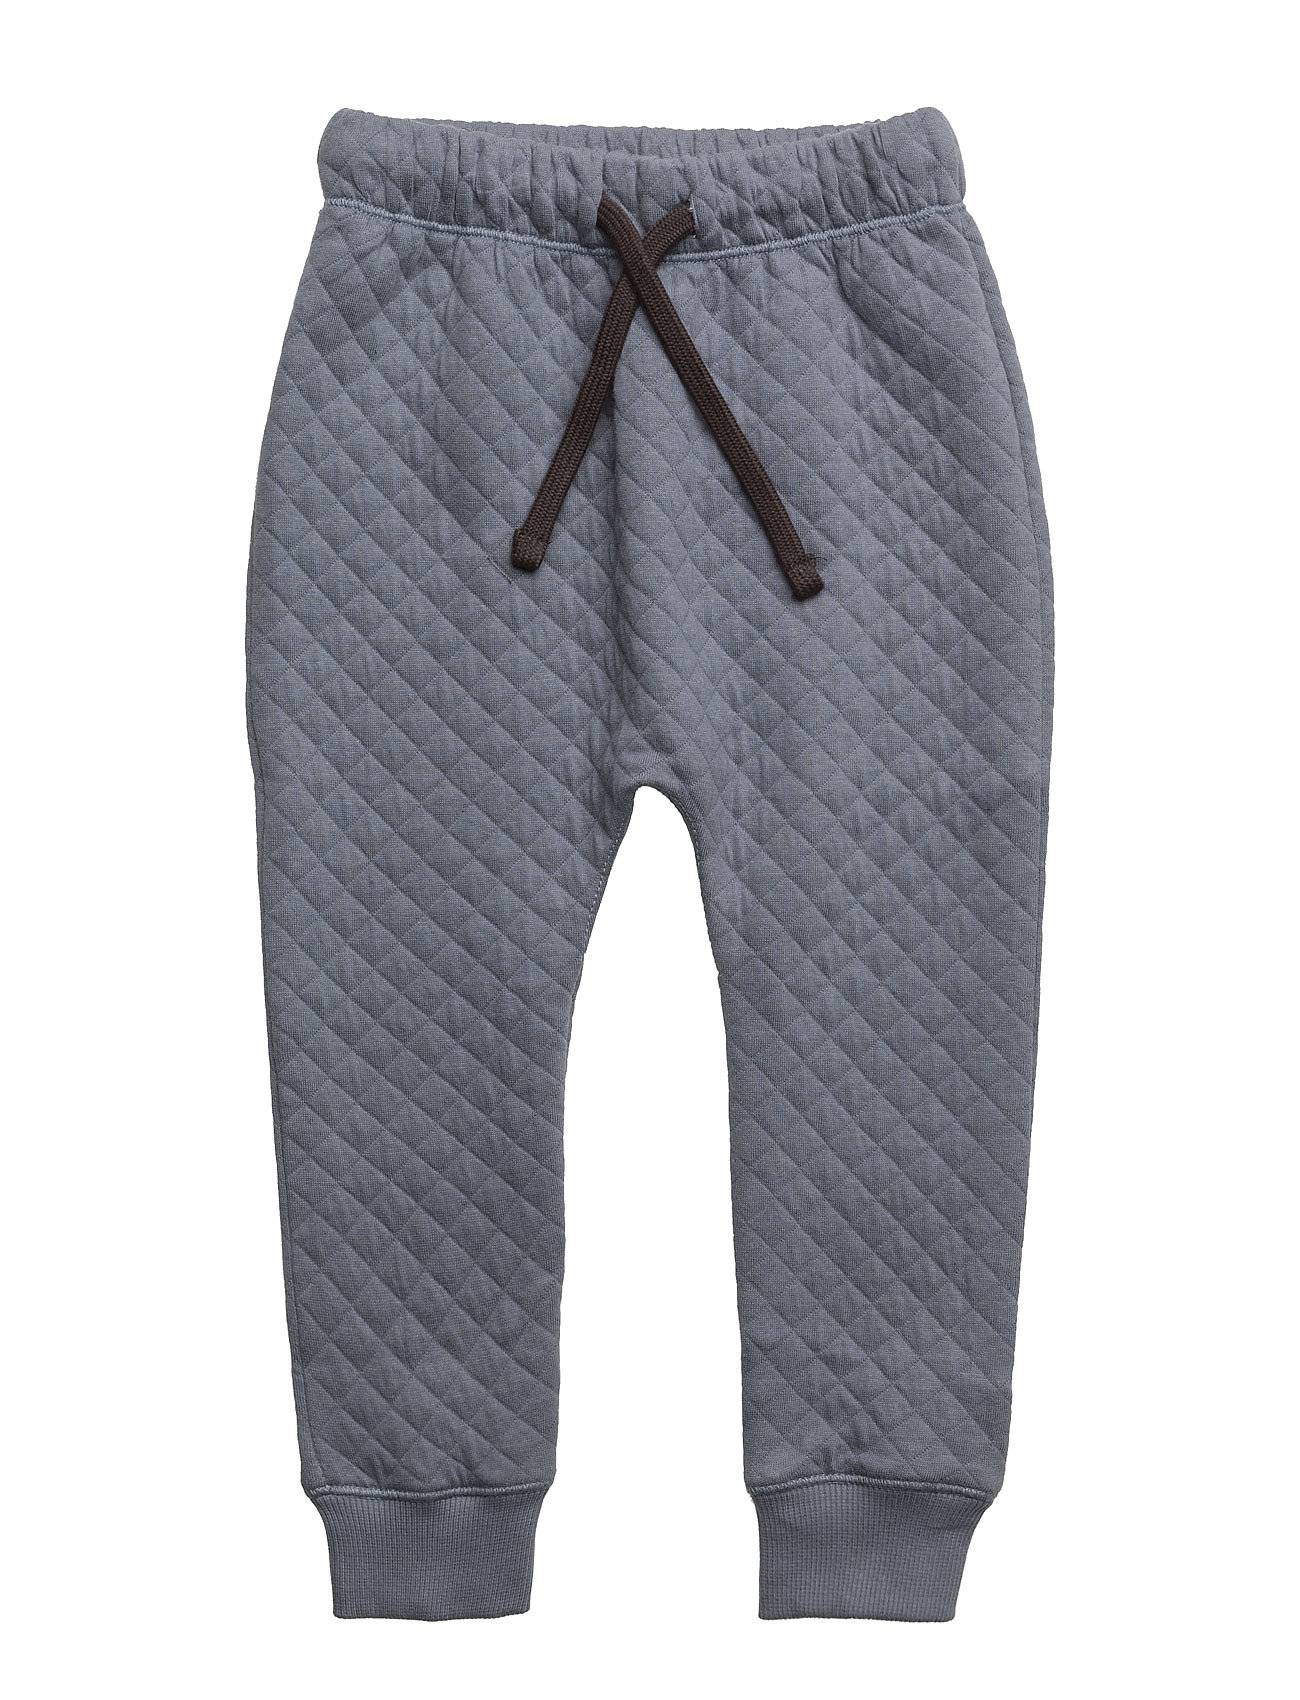 Phister & Philina Hamilton Quilty Pants